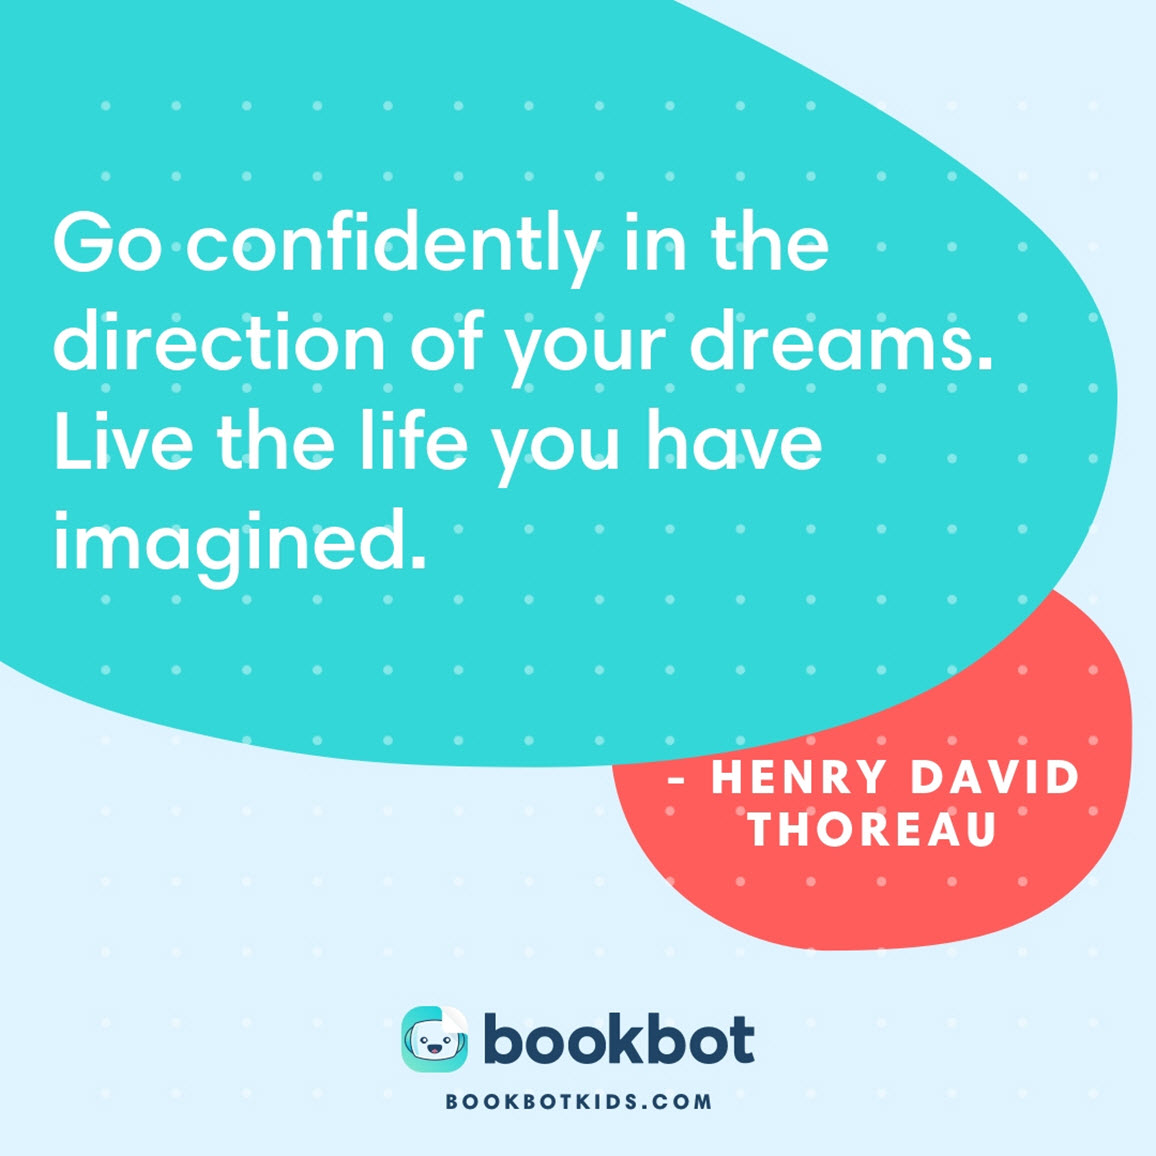 Go confidently in the direction of your dreams. Live the life you have imagined. – Henry David Thoreau